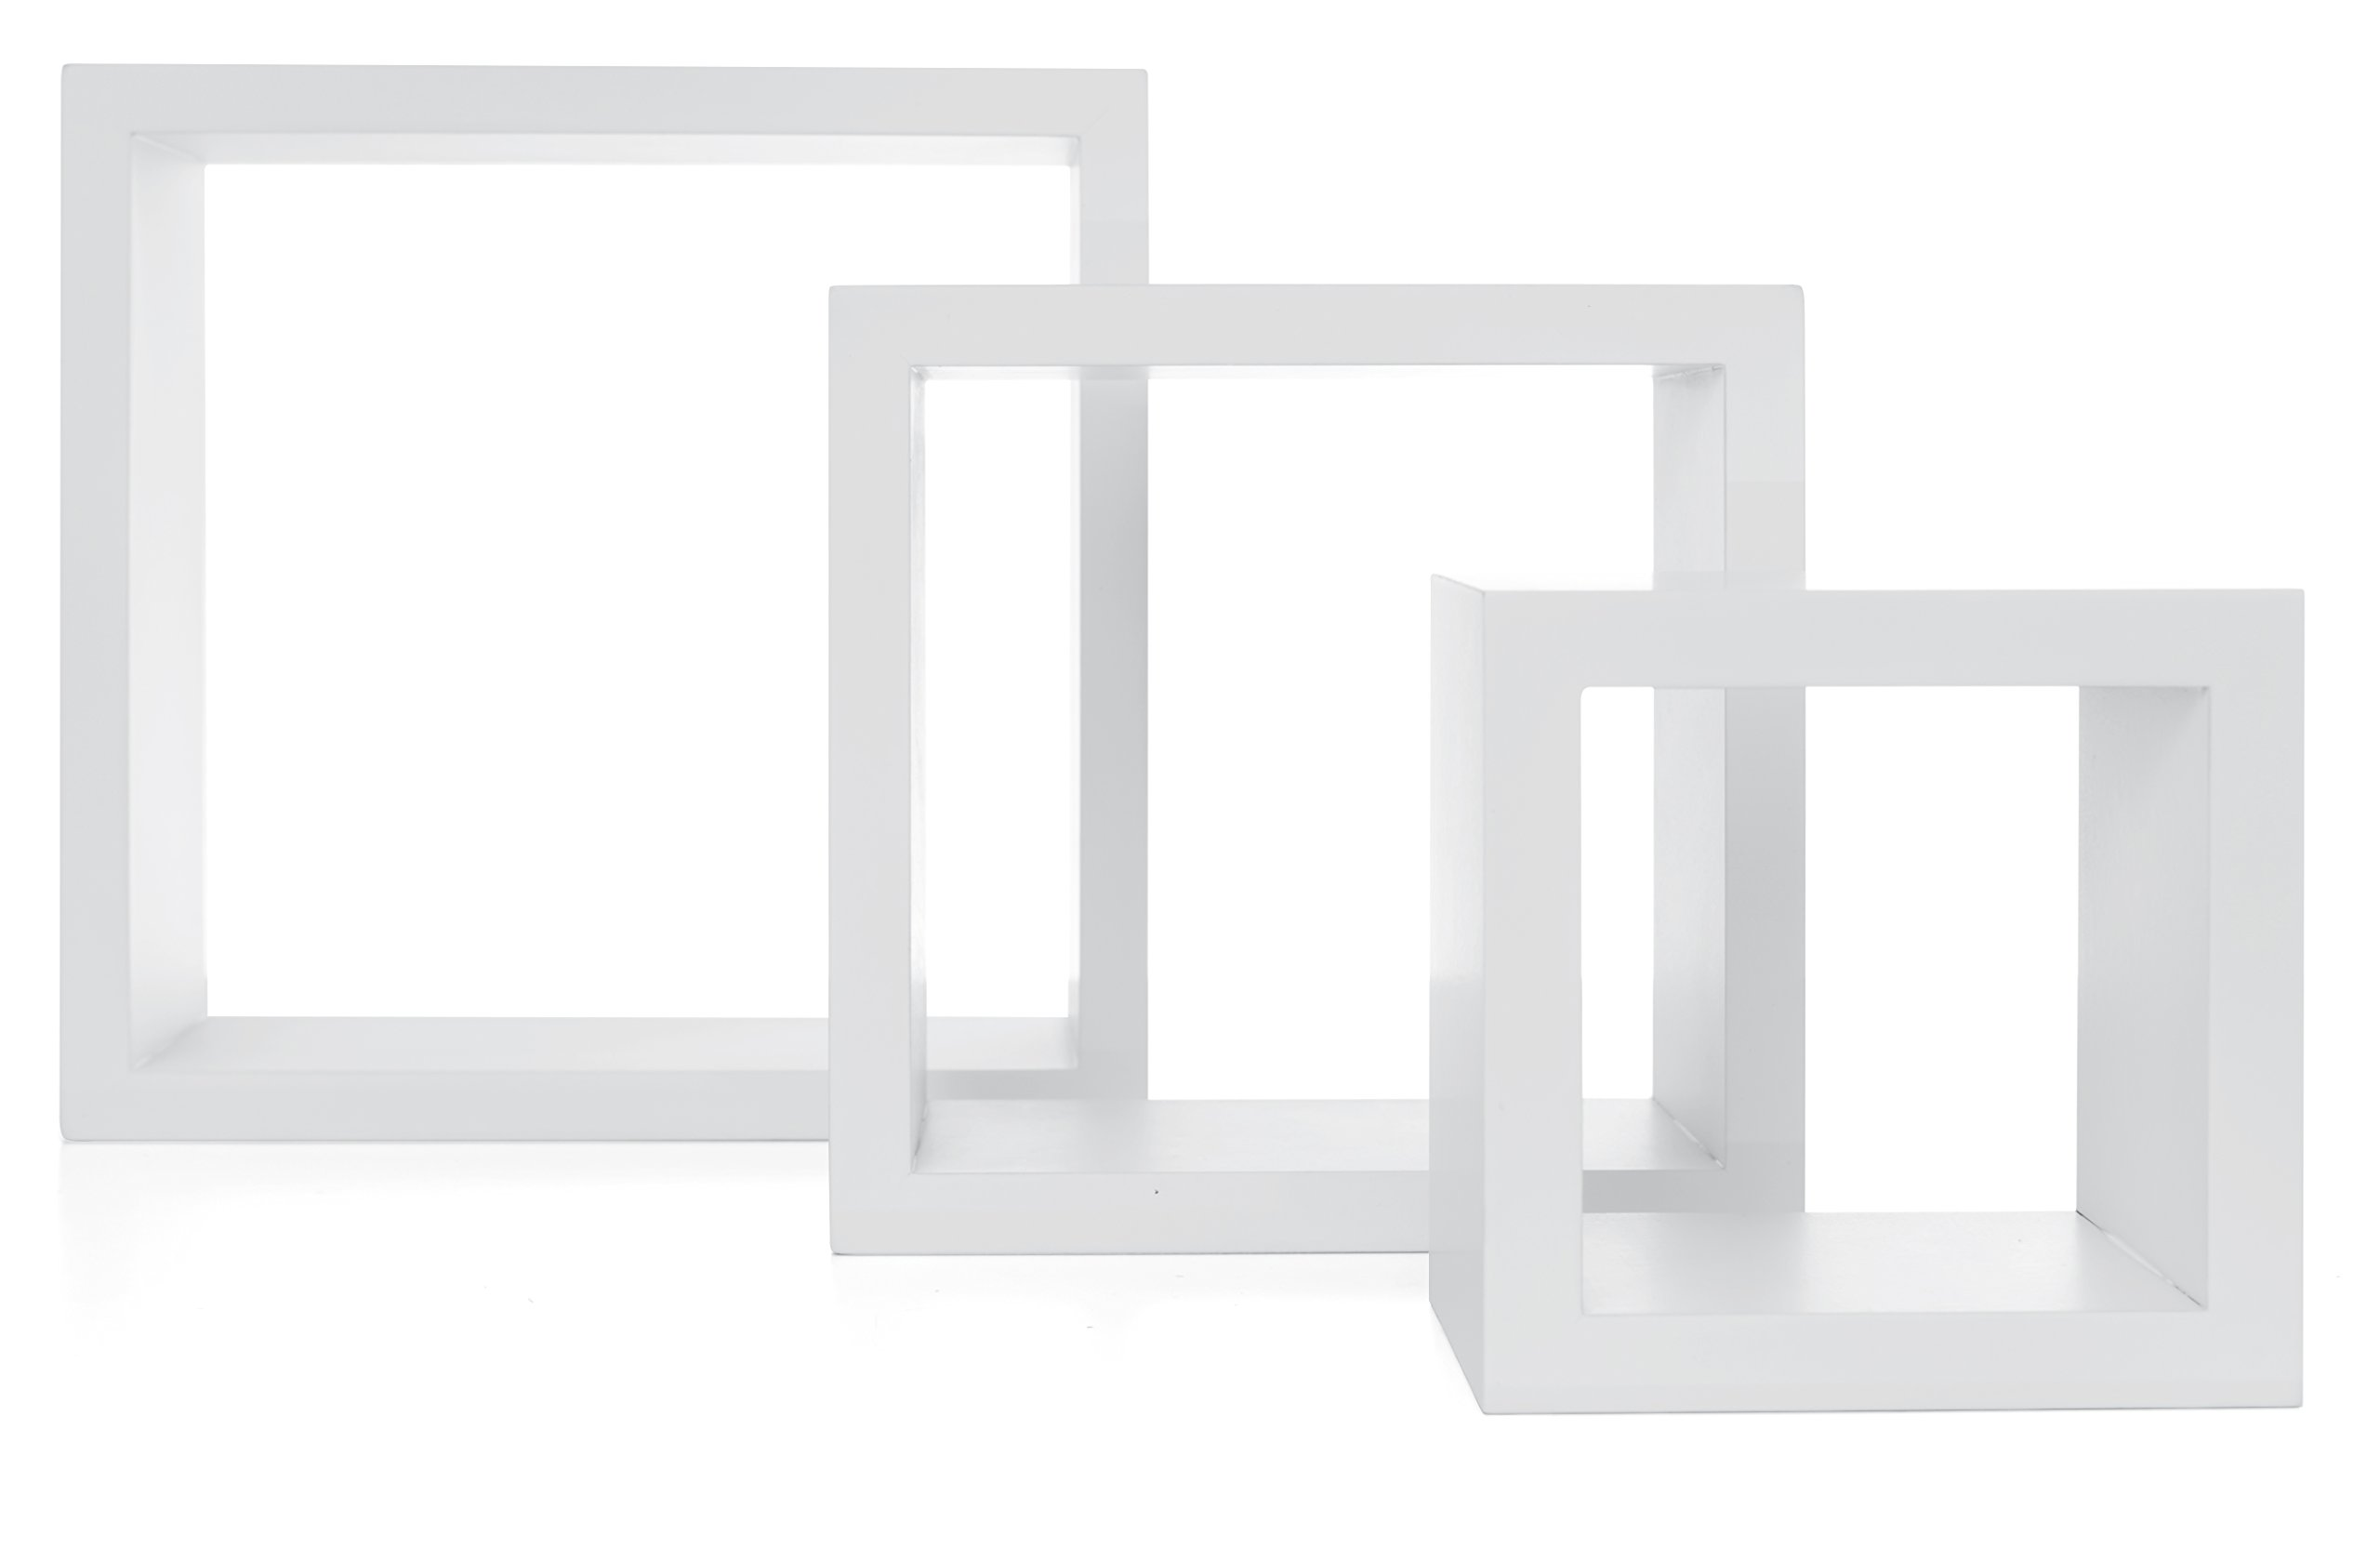 Nexxt Cubbi Contemporary Floating Wall Shelves 5 by 5 inch, 7 by 7 inch 9 by 9 inch White Set of 3 by nexxt